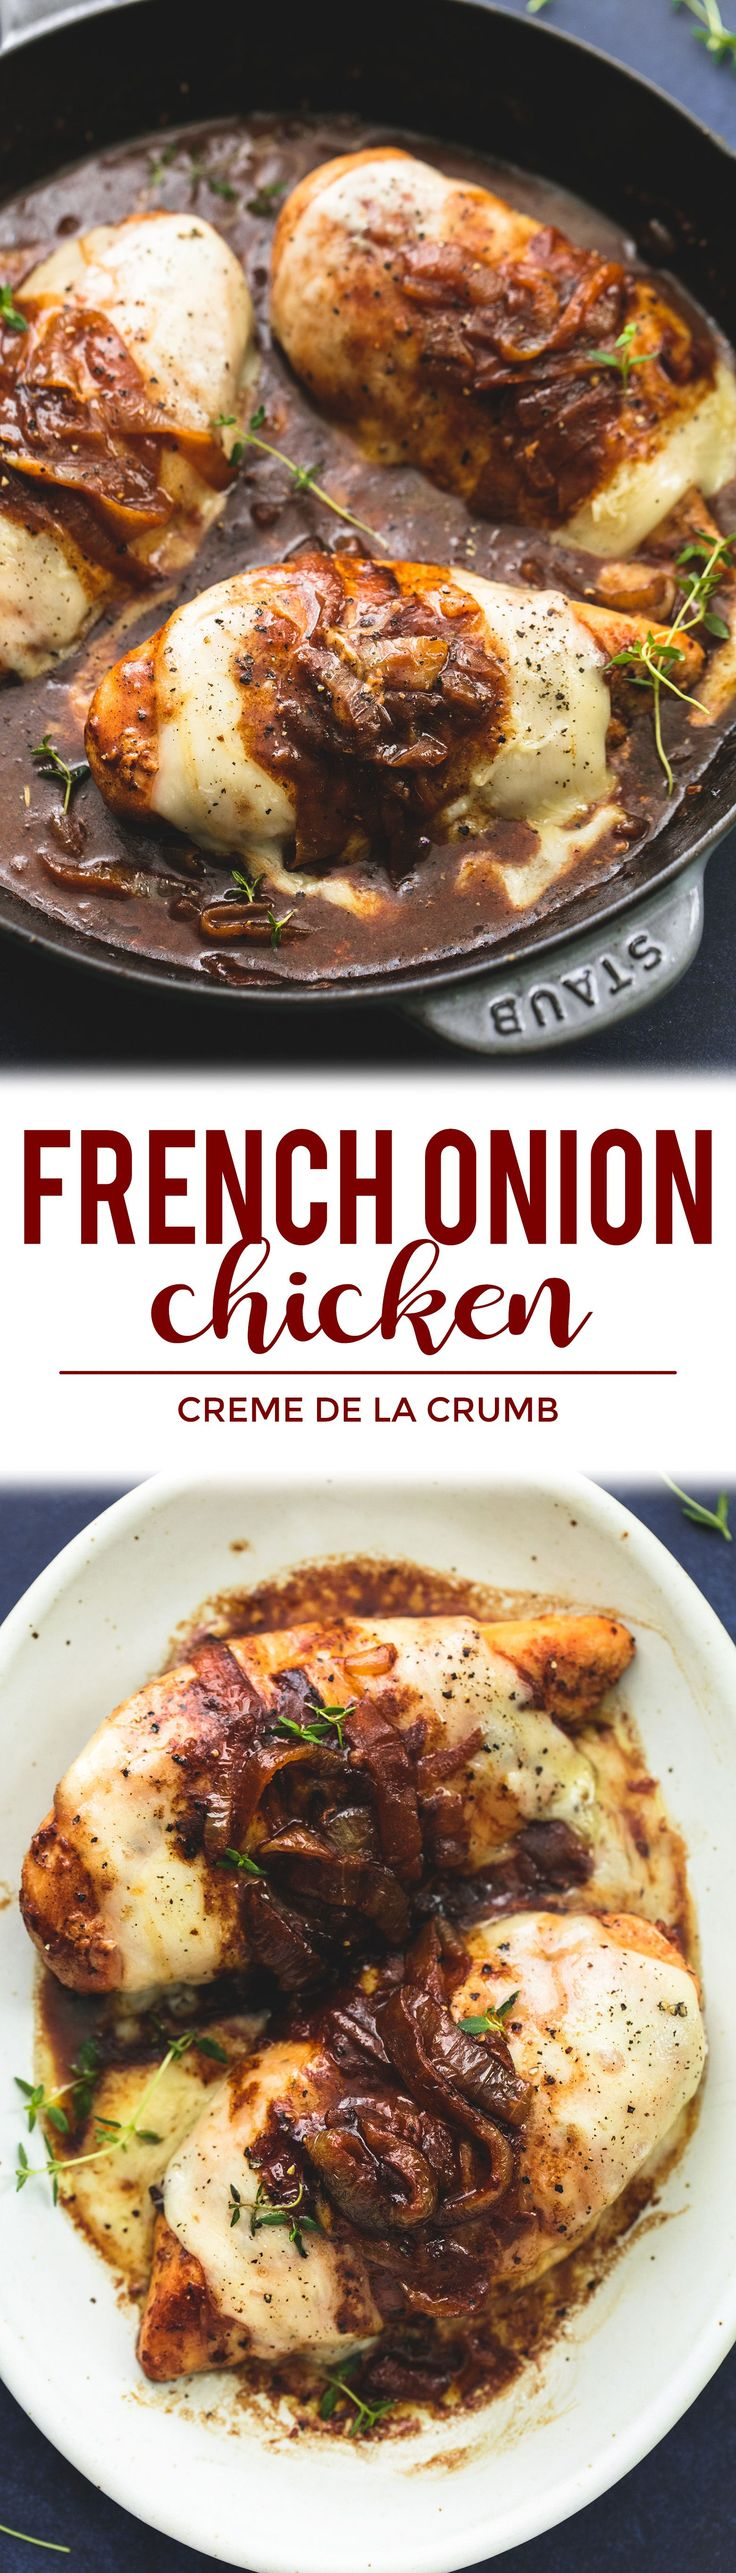 French Onion Chicken Skillet - juicy chicken smothered in caramelized onion gravy, with melty provolone, Swiss, and parmesan cheeses! | lecremedelacrumb.com